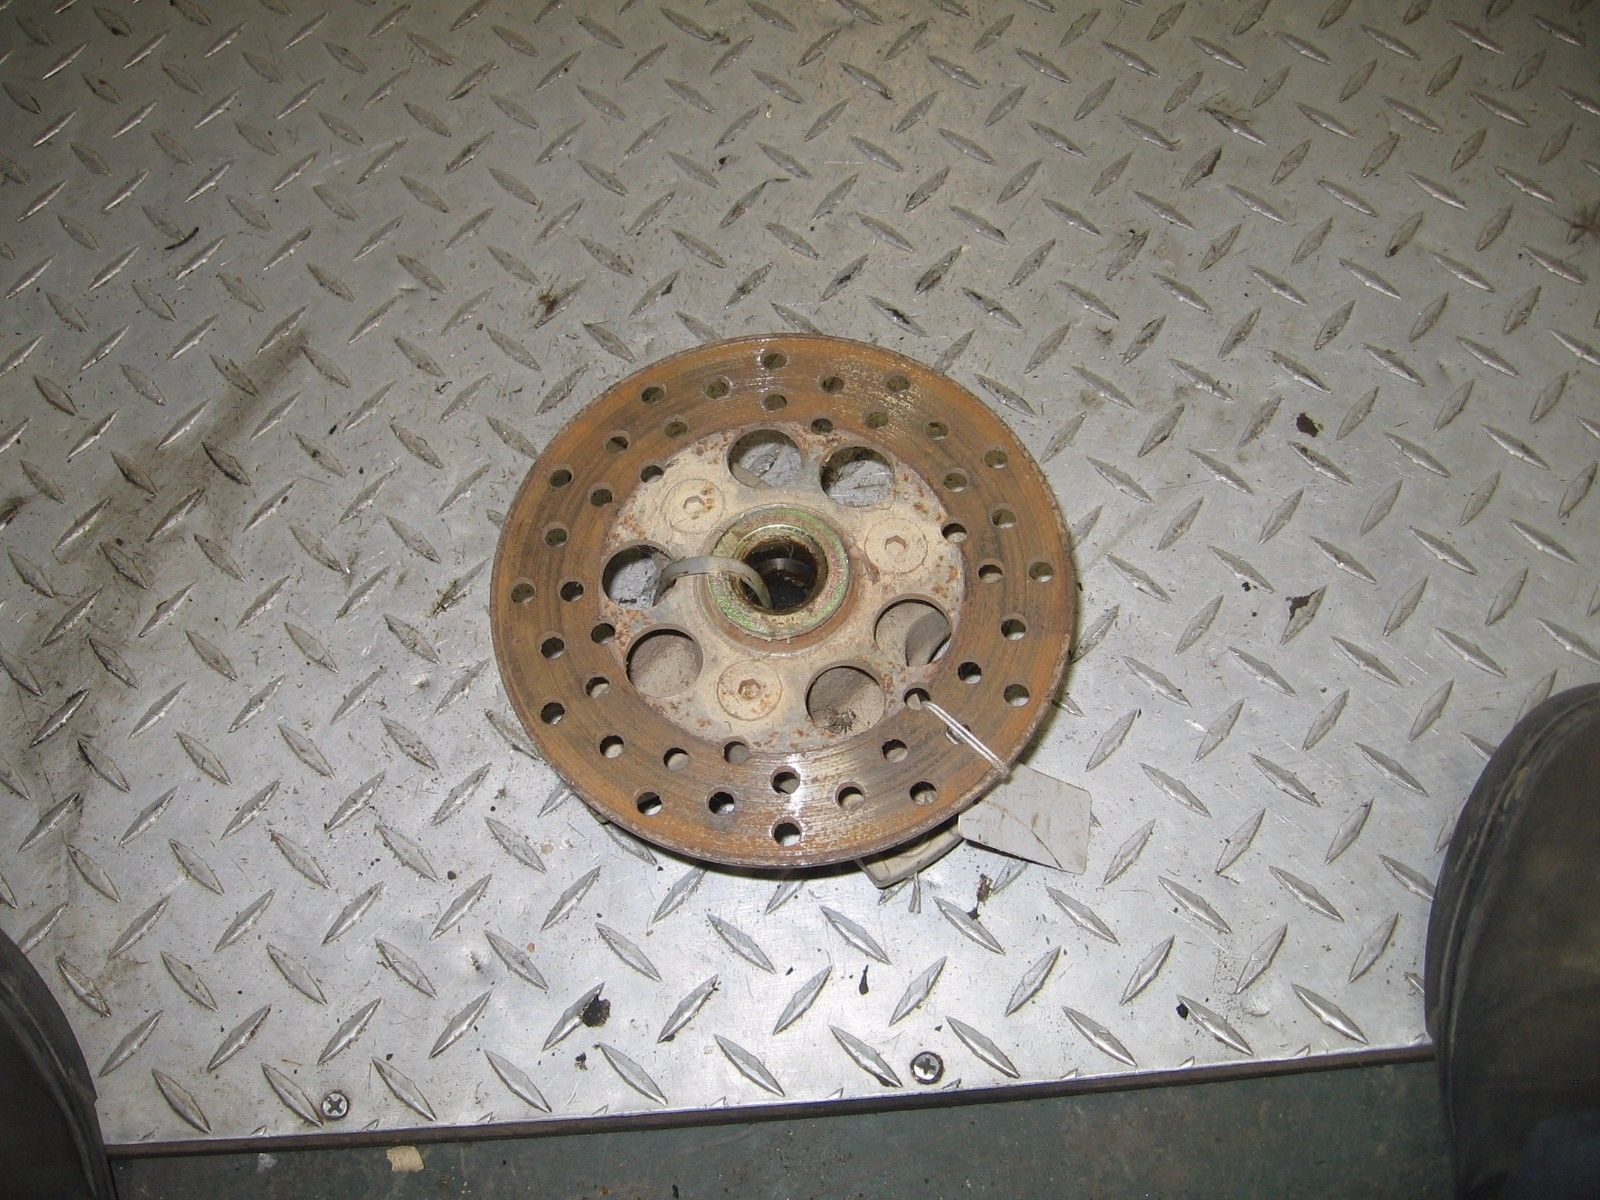 KAWASAKI 1988/2004 BAYOU 300 2X4 LEFT FRONT HUB W/ BRAKE ROTOR DISC  PART 30,572